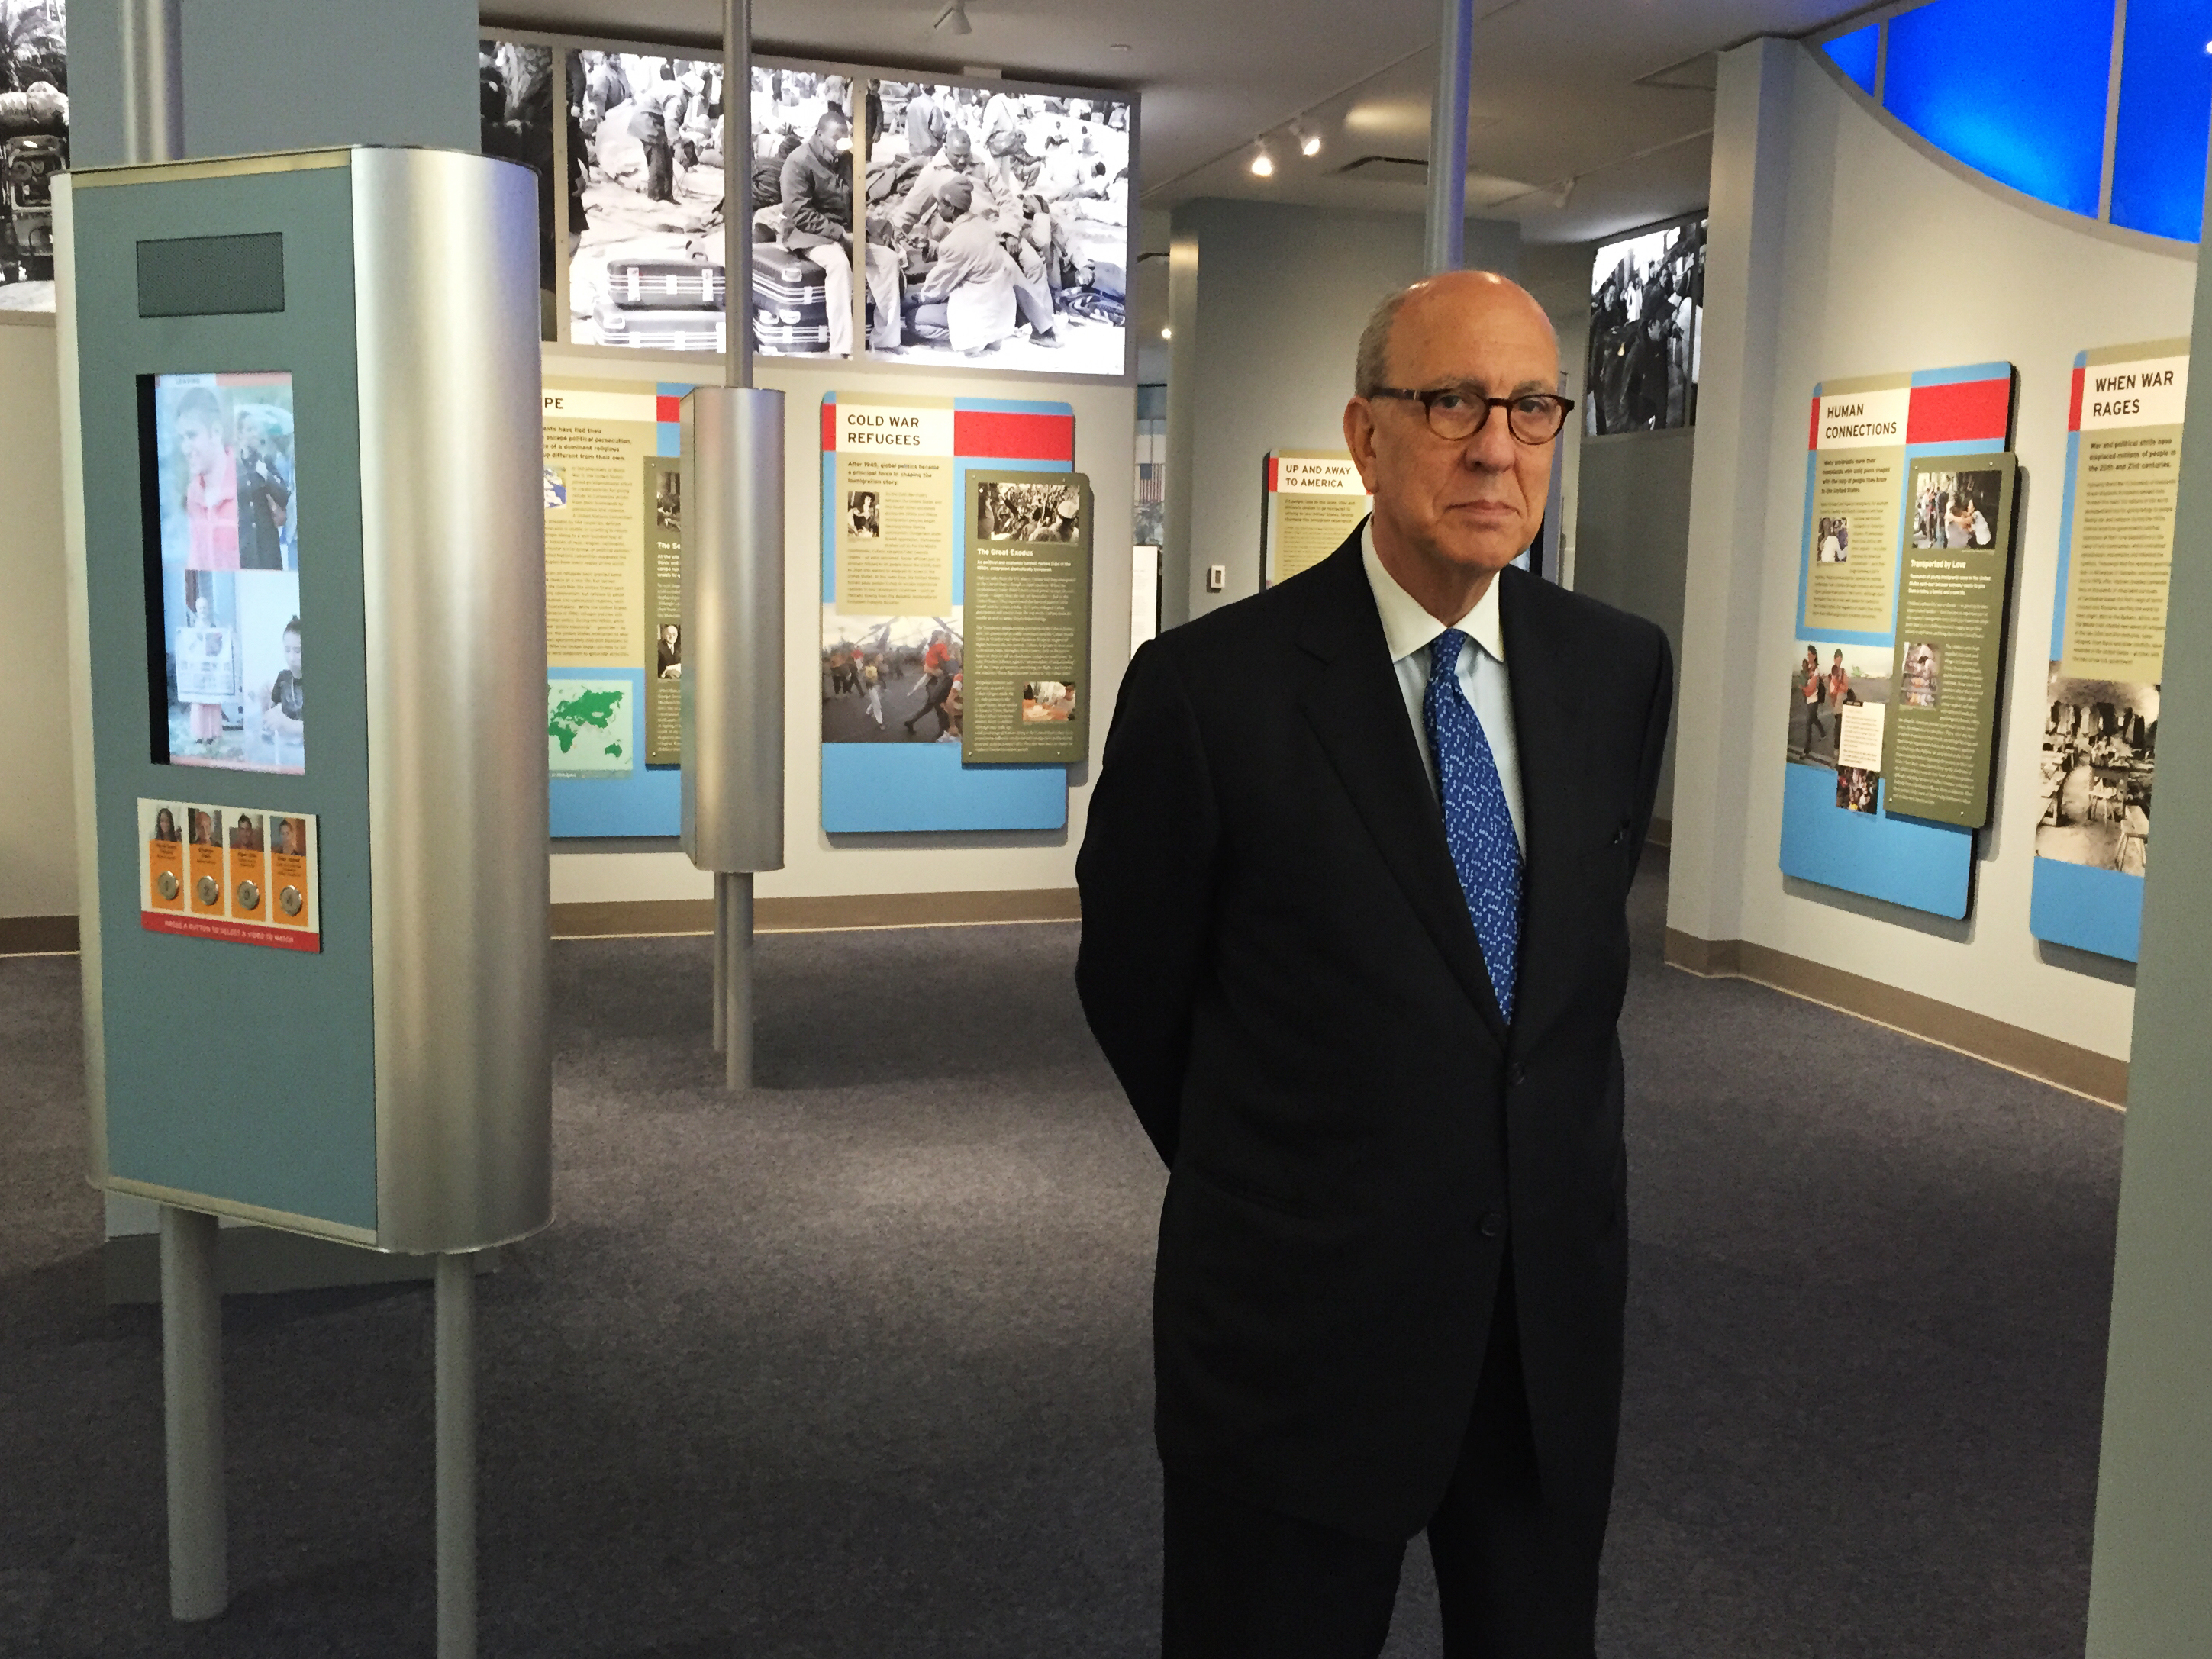 Stephen Briganti, president and CEO of the Statue of Liberty-Ellis Island Foundation, led the restoration of the island's main building. His mother and grandparents emigrated from Italy and passed through Ellis Island.The Ellis Island National Immigration Museum is housed inside the island's main building, where 12 million immigrants were processed between 1892 and 1954.Stephen Briganti, president and CEO of the Statue of Liberty-Ellis Island Foundation, led the restoration of the island's main building. His mother and grandparents emigrated from Italy and passed through Ellis Island.The Ellis Island National Immigration Museum is housed inside the island's main building, where 12 million immigrants were processed between 1892 and 1954.